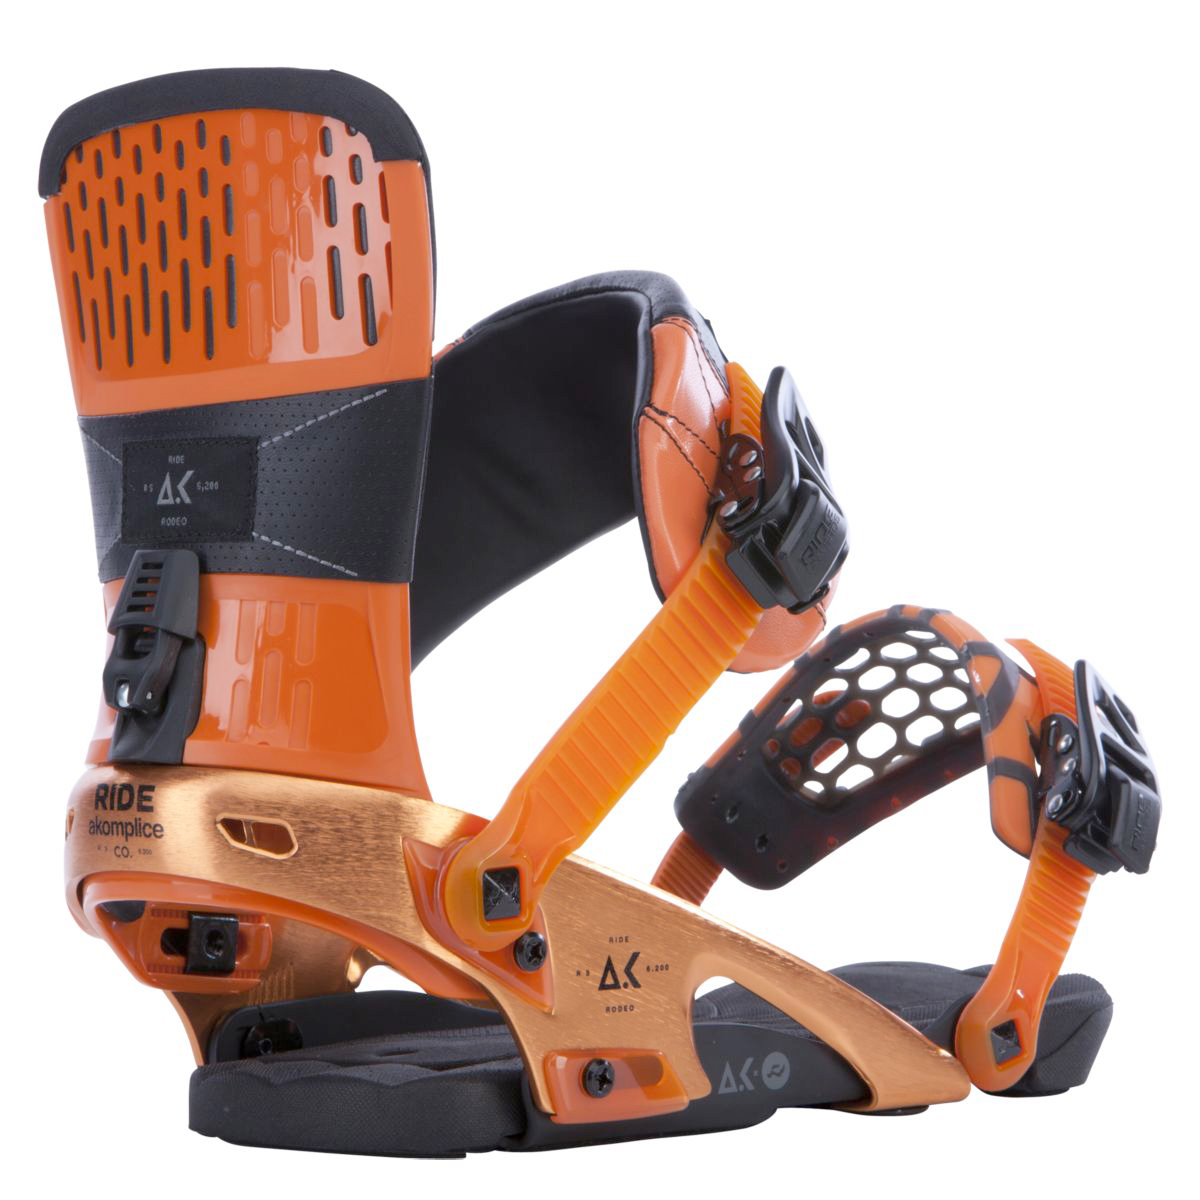 Ride Snowboard Bindings